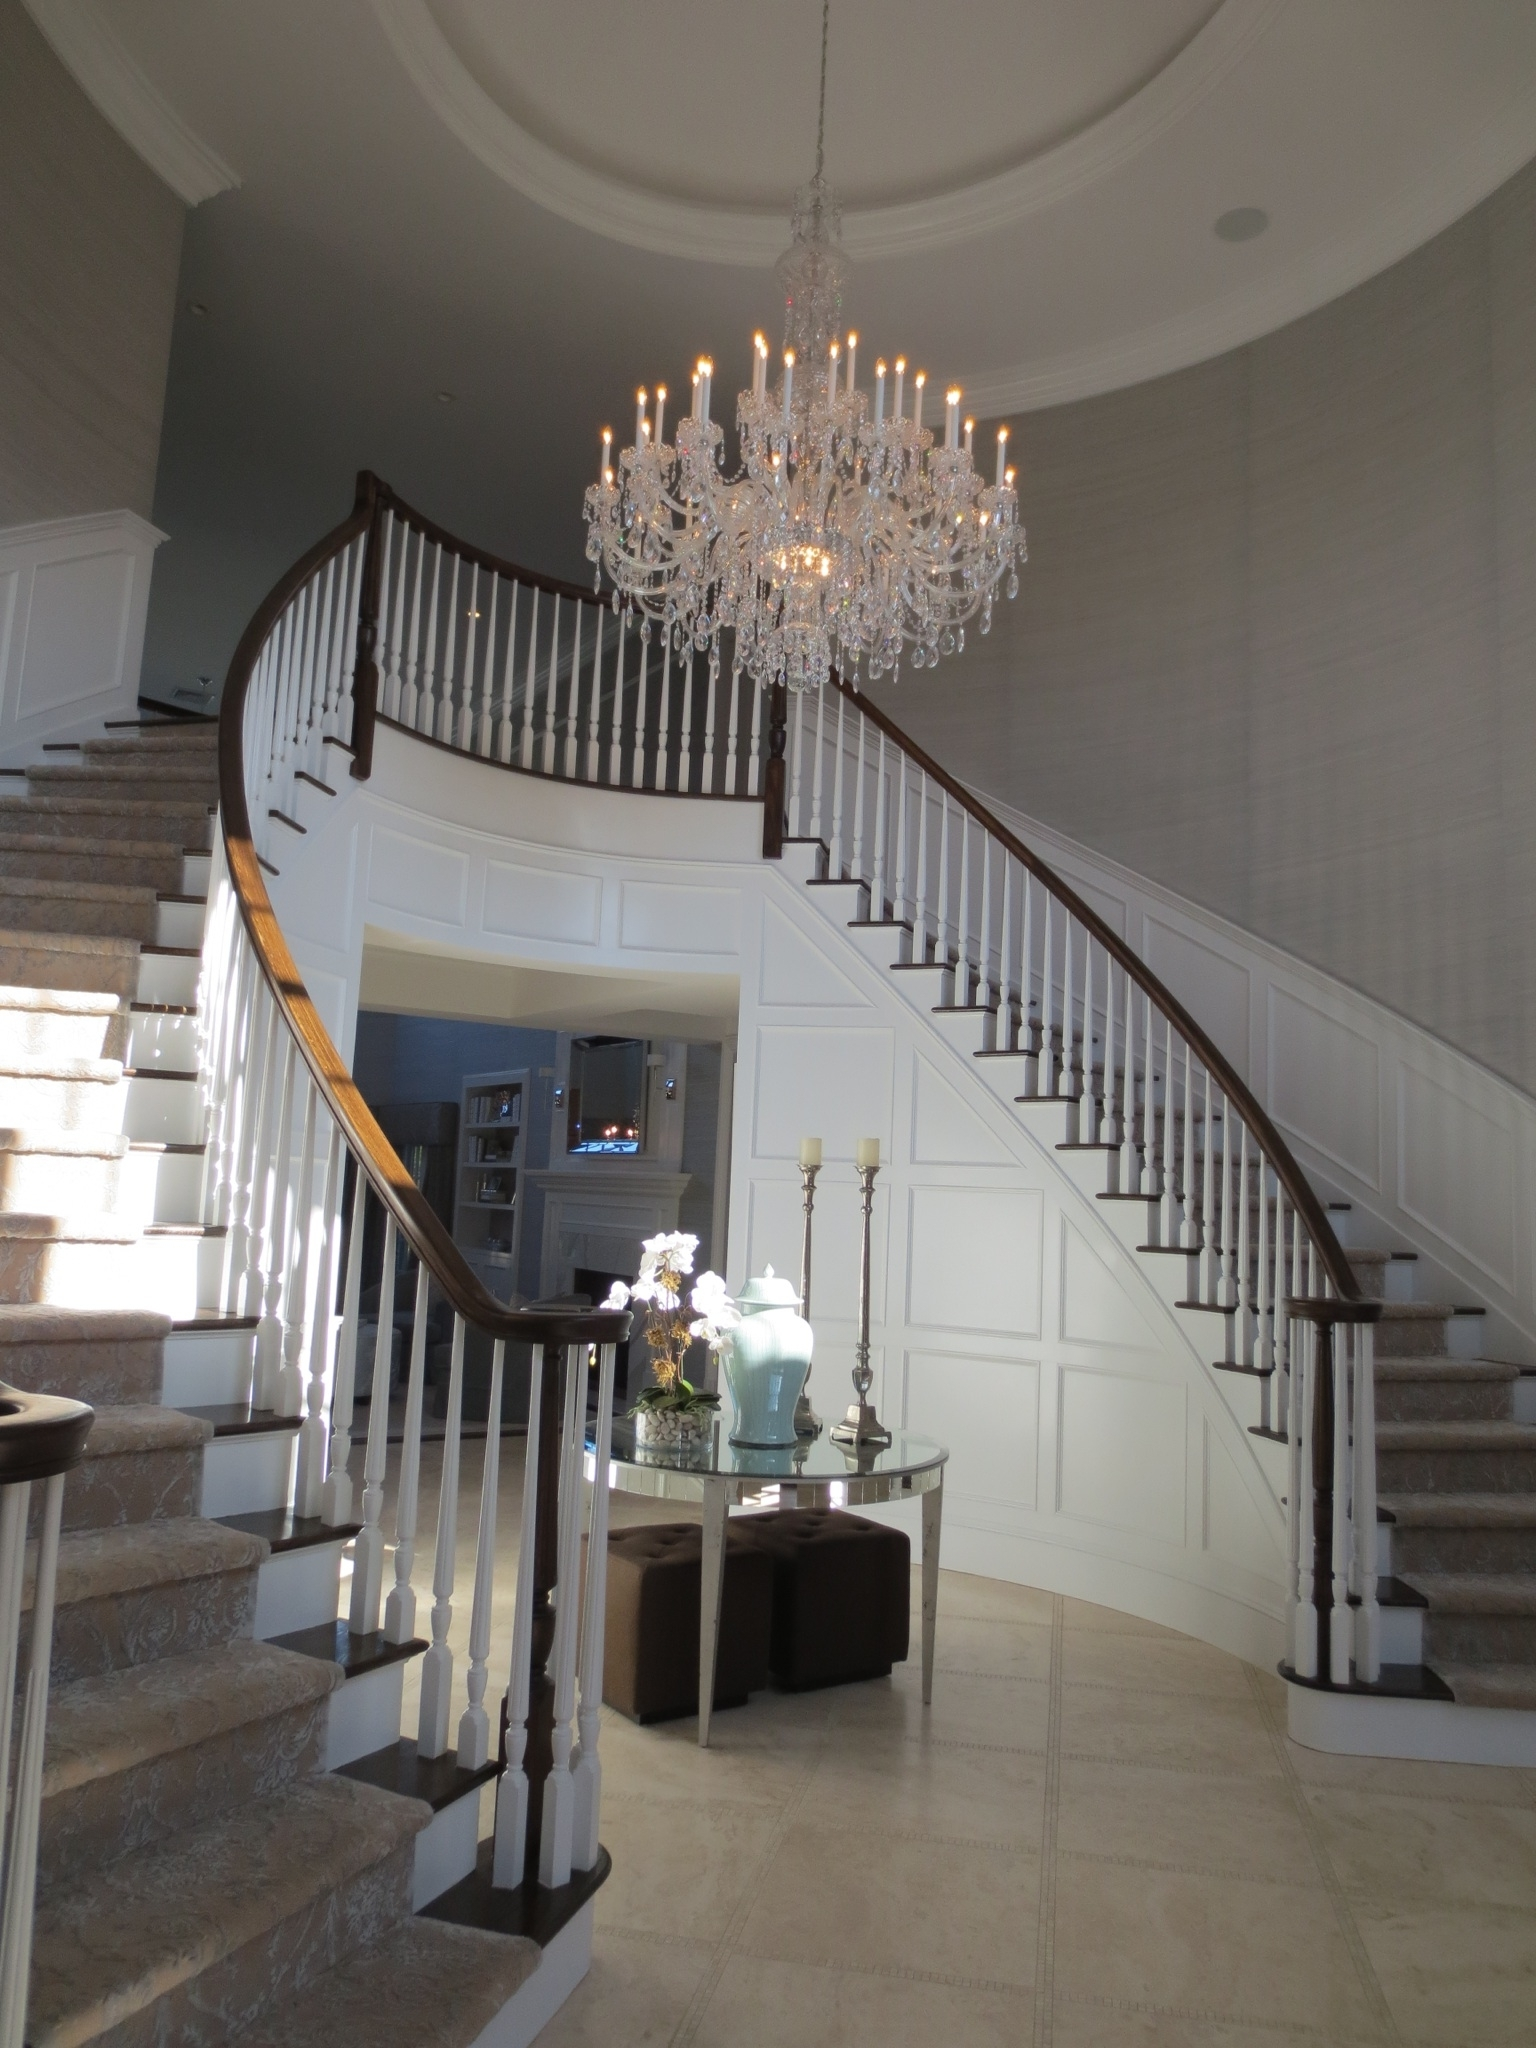 Fashionable Hotel Staircase Chandelier Modern Lighting Fixture Square  Pics With Regard To Staircase Chandeliers (View 6 of 20)